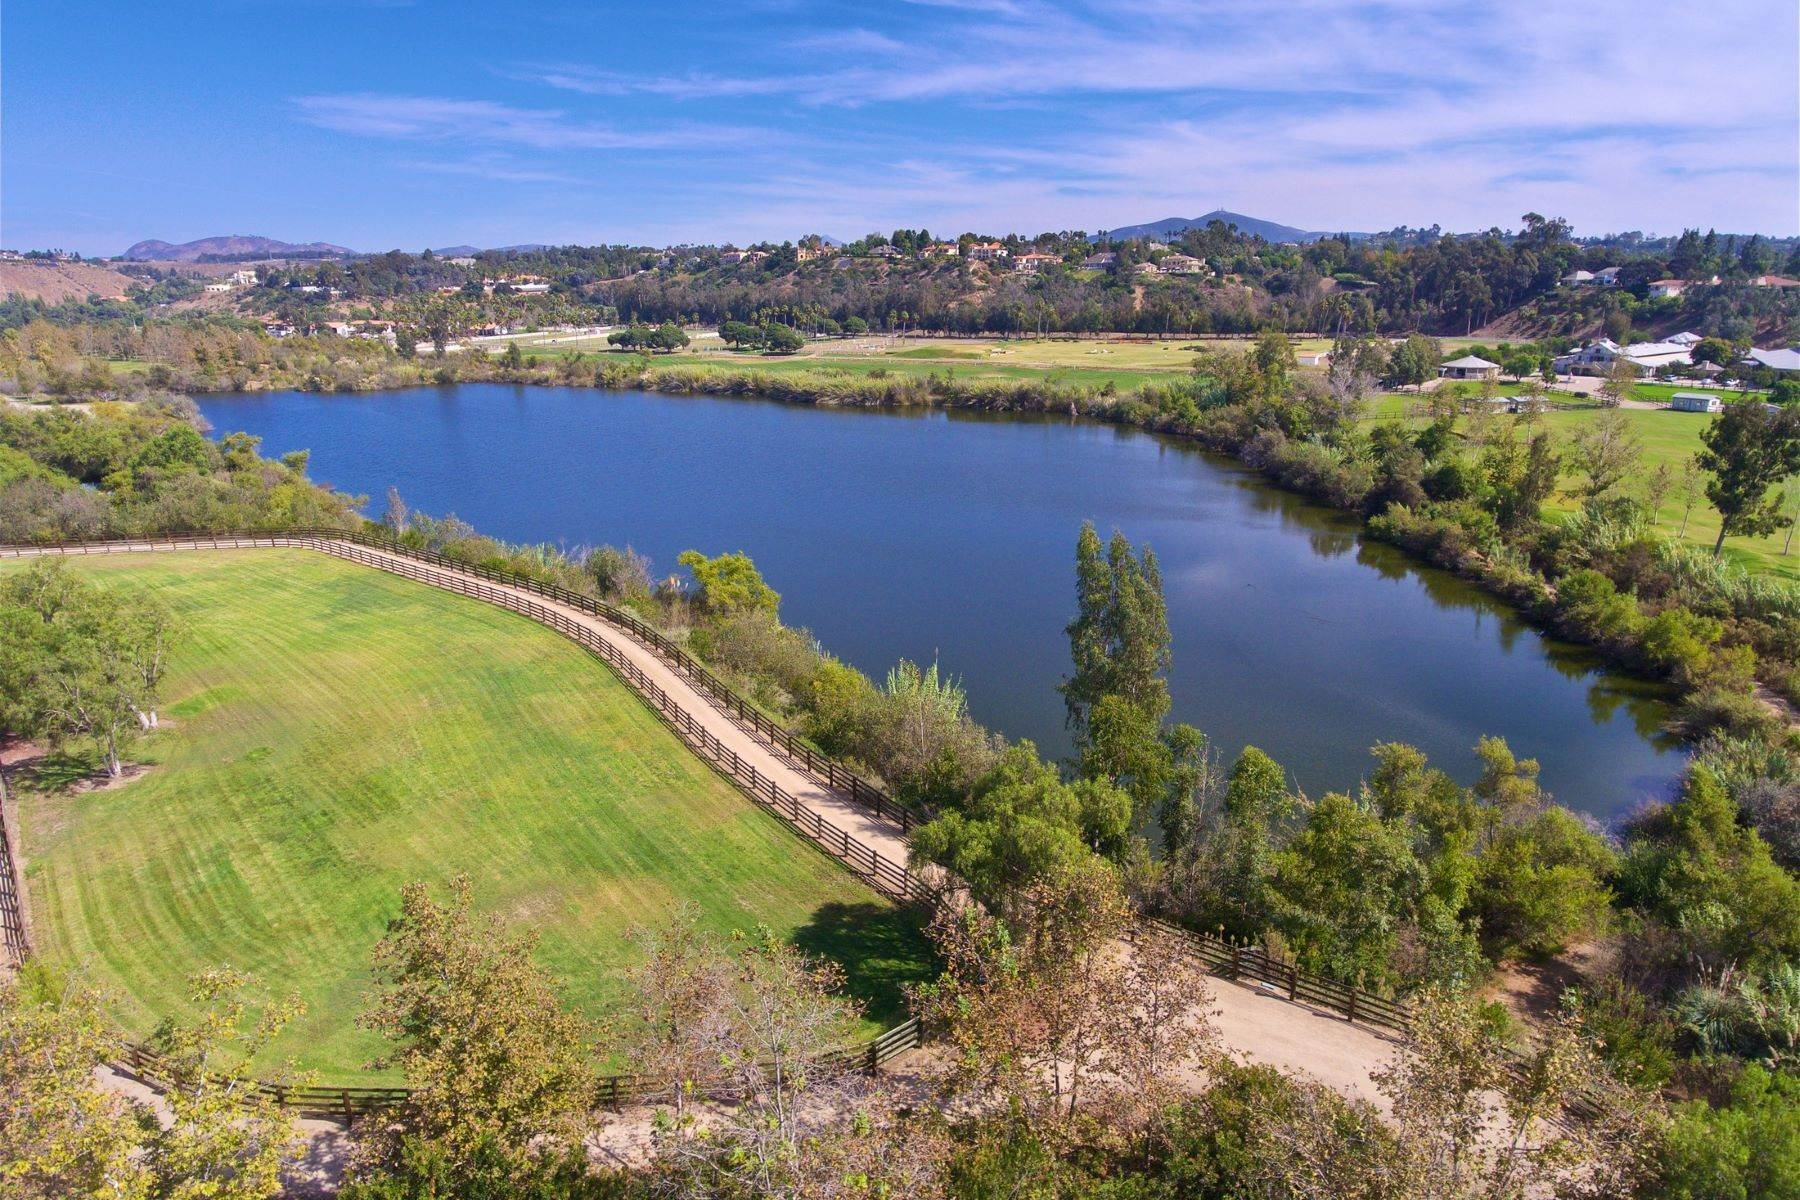 38. Farm and Ranch Properties for Sale at 16401 Calle Feliz, Rancho Santa Fe, Ca, 92067 16401 Calle Feliz Rancho Santa Fe, California 92067 United States